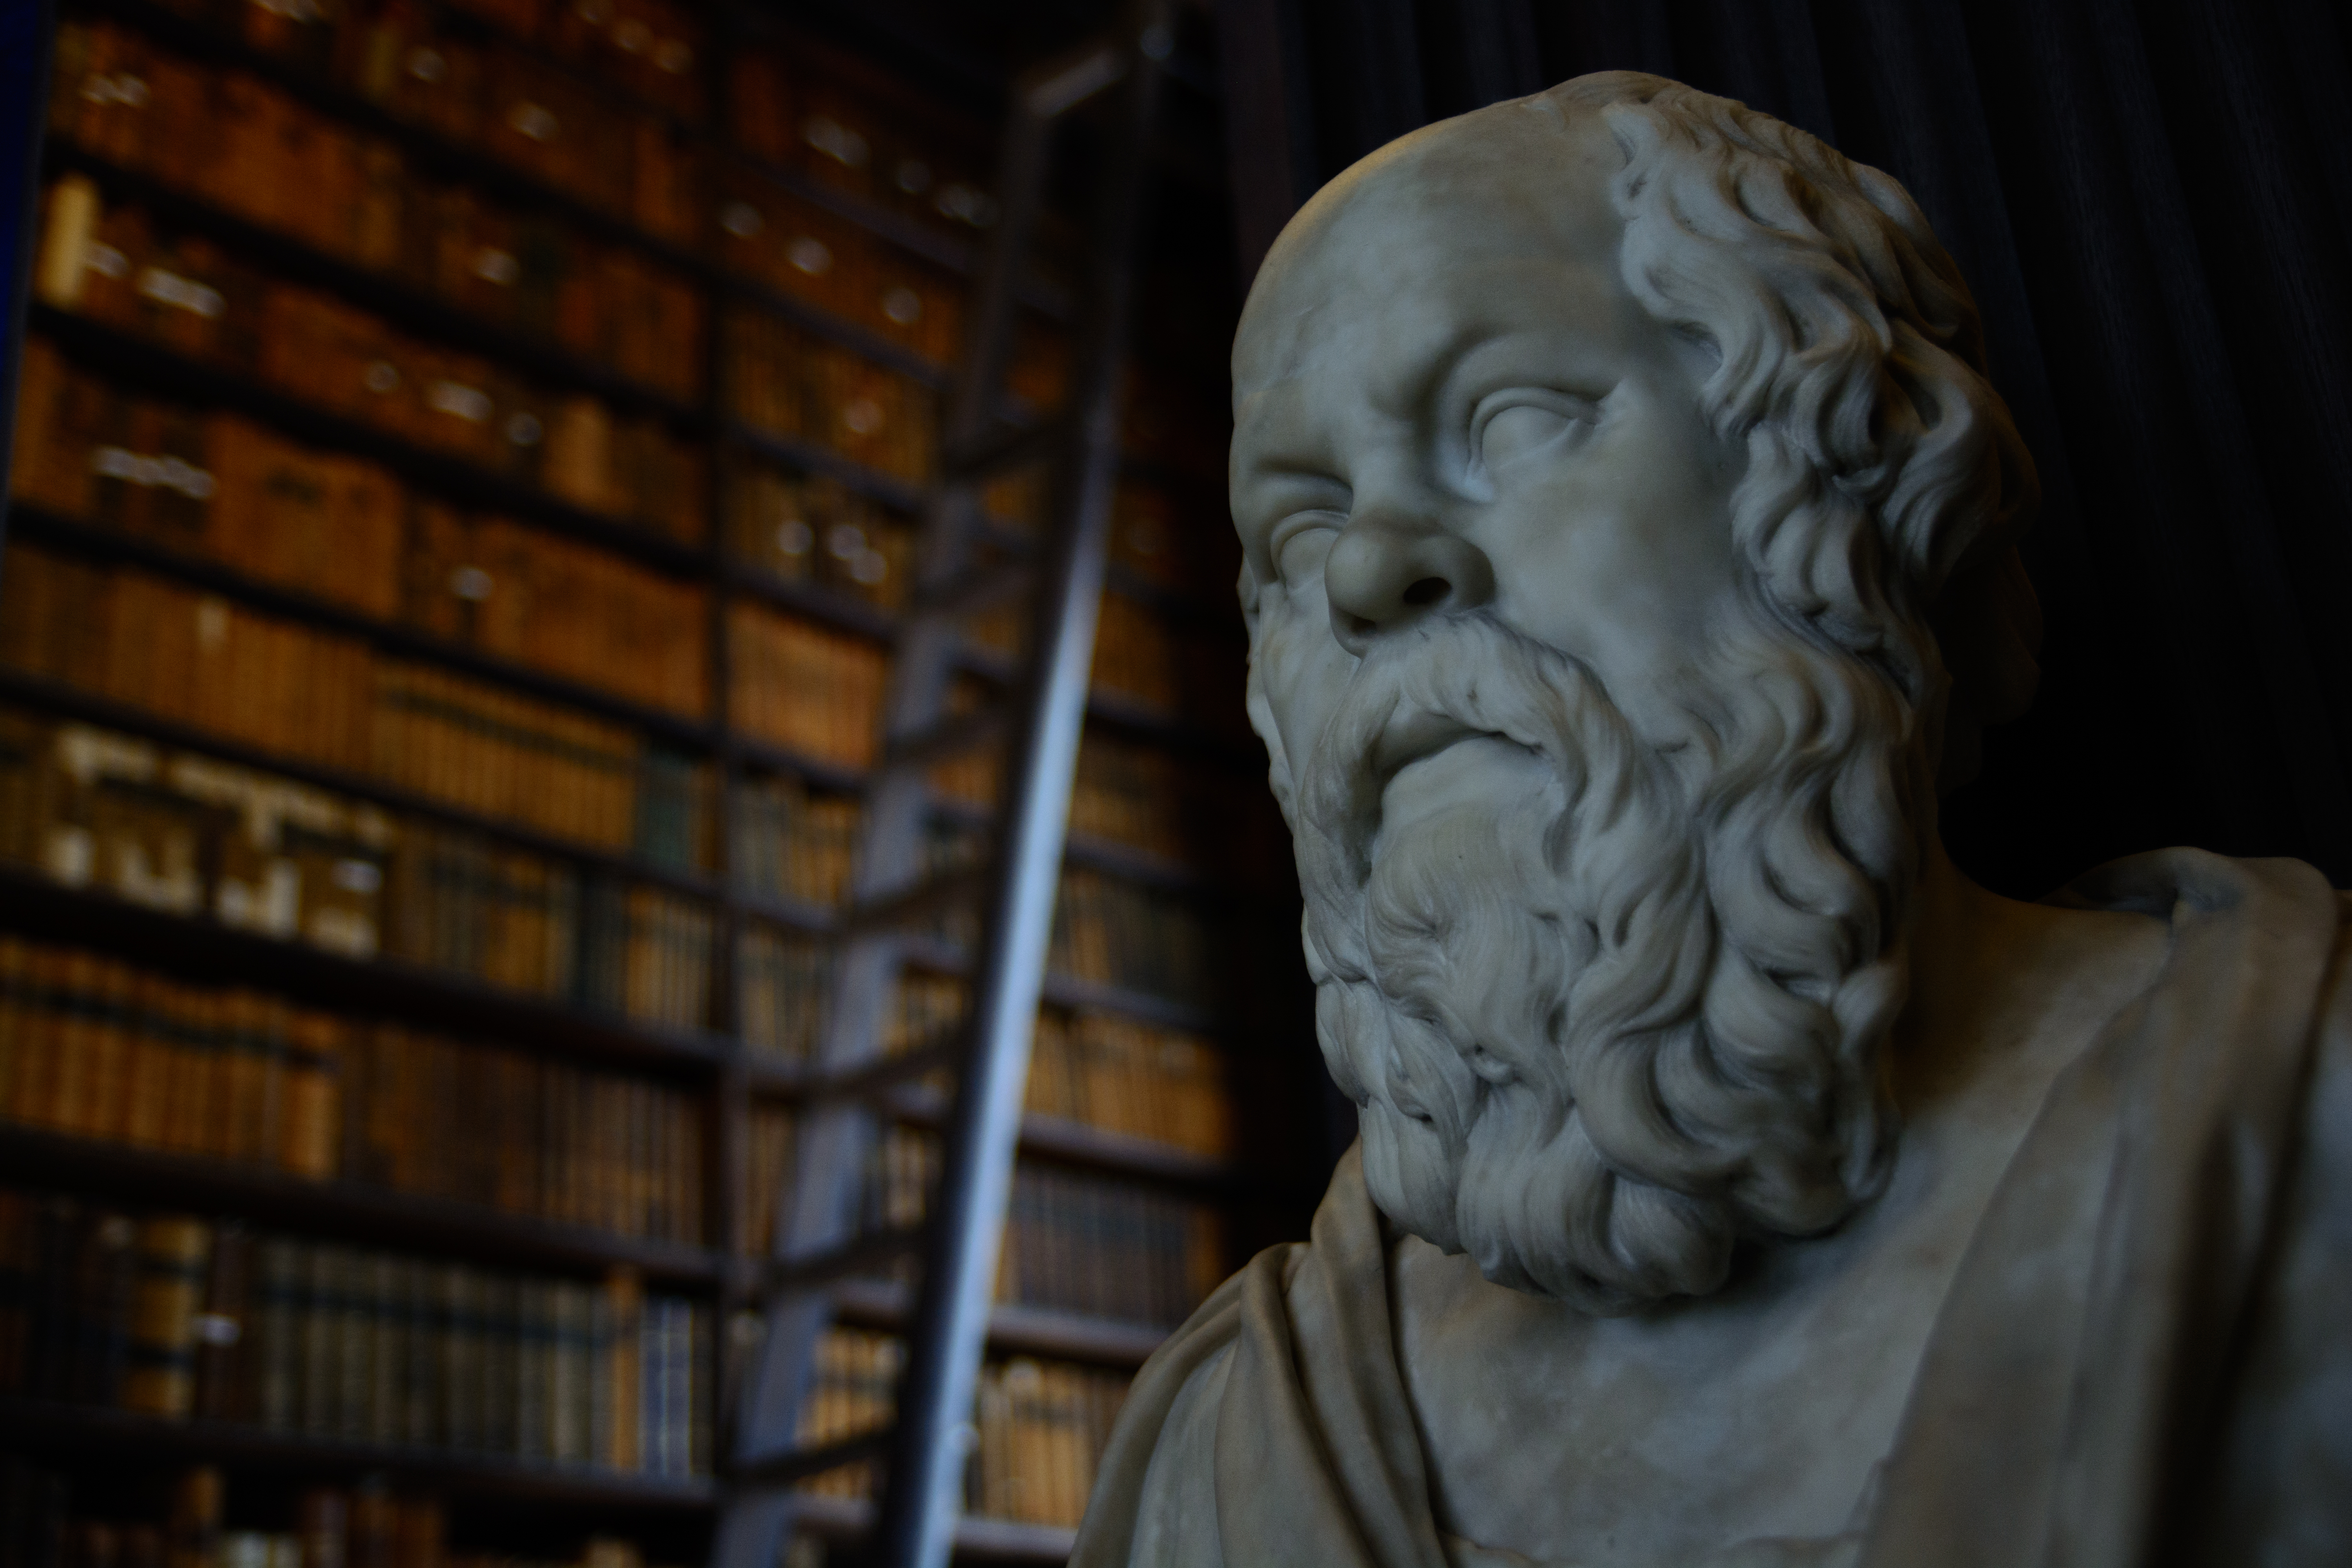 Statue of Socrates in a library